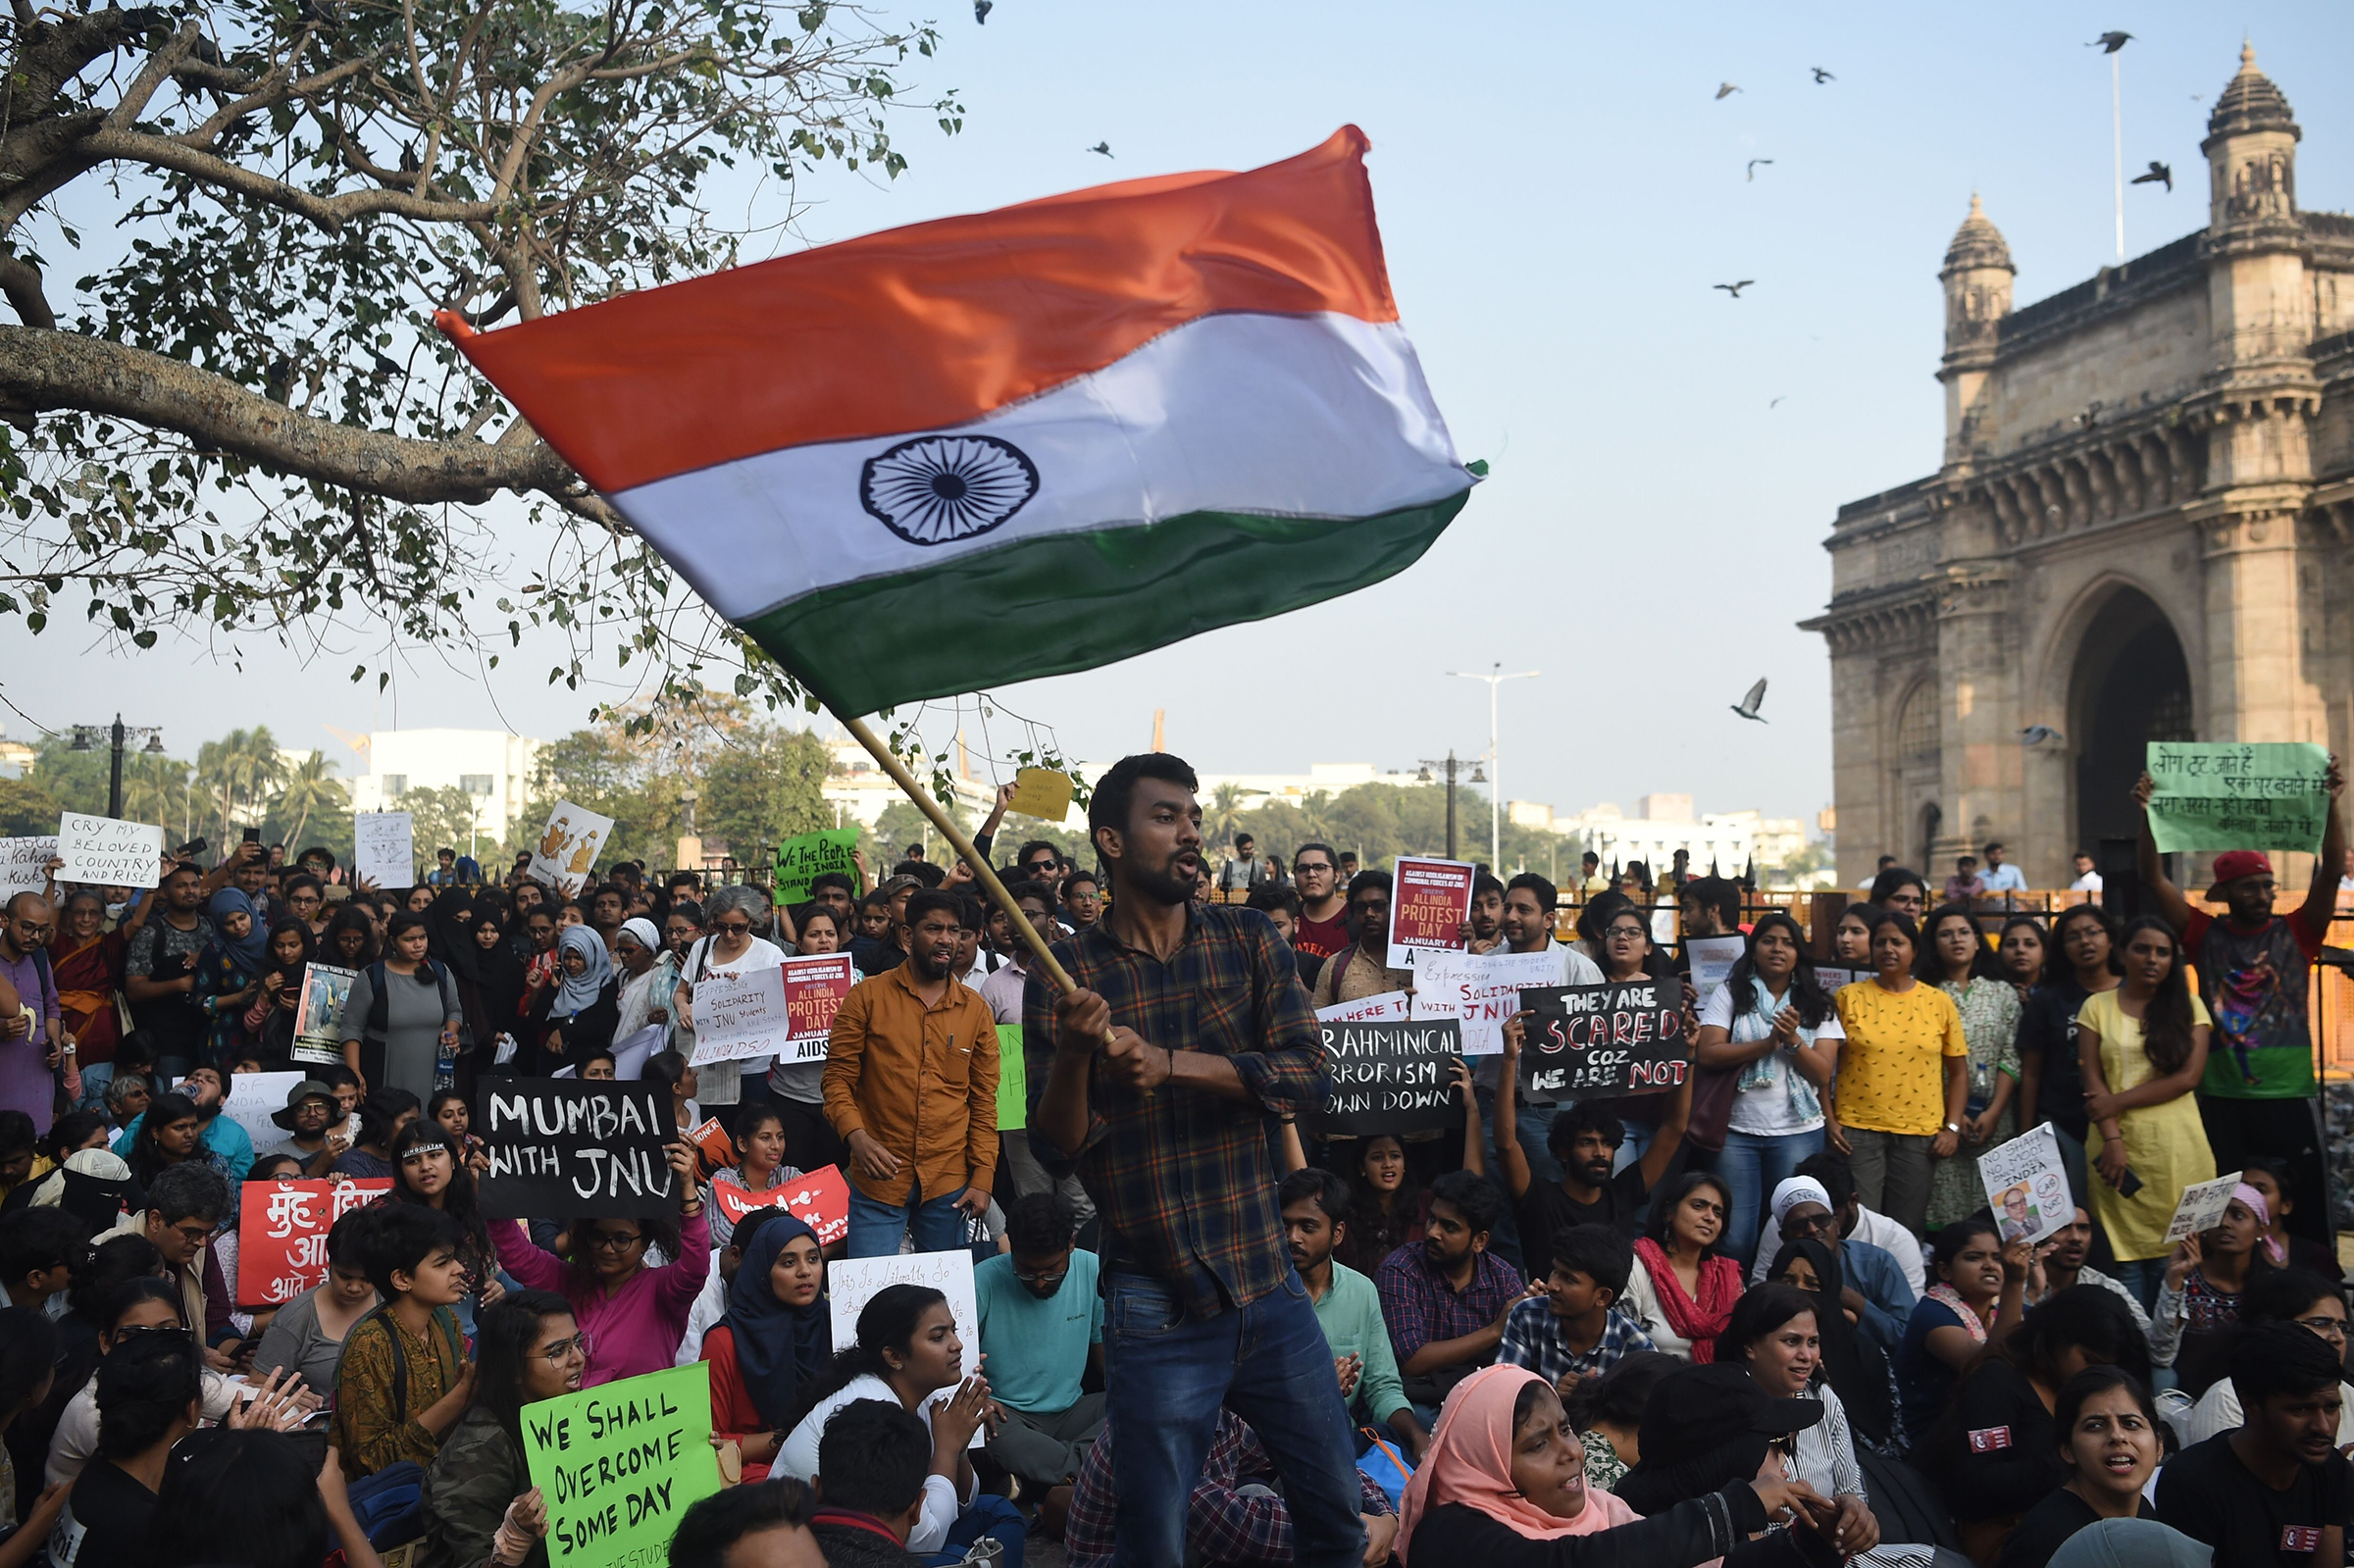 Protesters and students in Mumbai shout slogans and hold Indian flags as they protest against the violent clashes at the Jawaharlal Nehru University (JNU) campus in New Delhi a day before, on Jan. 6, 2020.